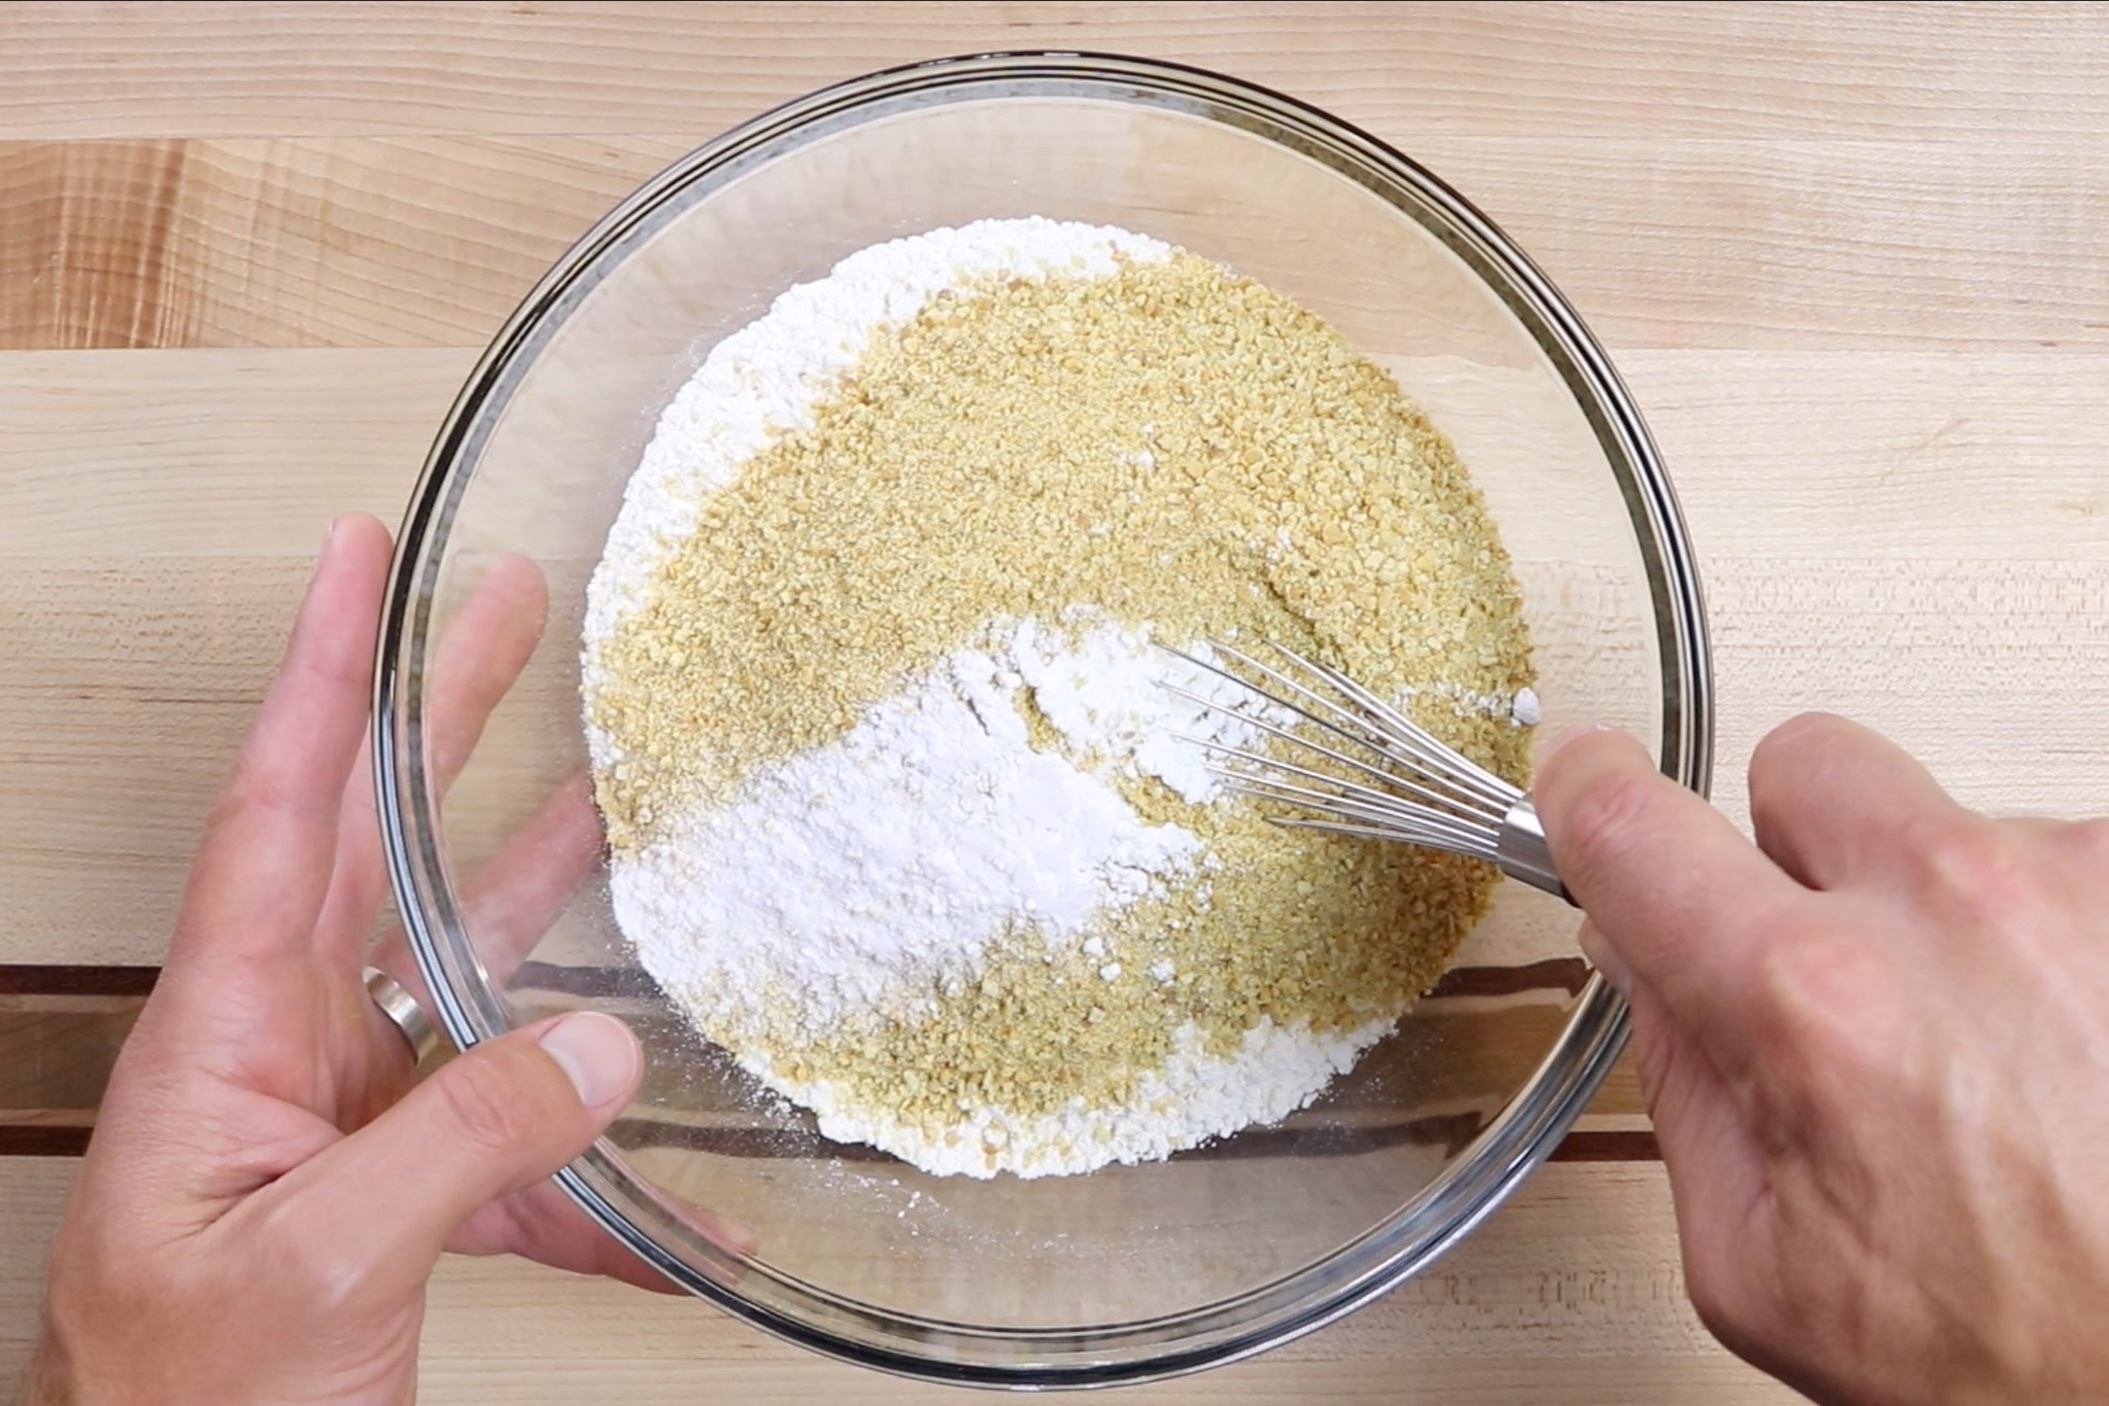 1. In a medium bowl add the flour, graham cracker crumbs, cornstarch, baking powder, baking soda and salt. Whisk together until incorporated. -